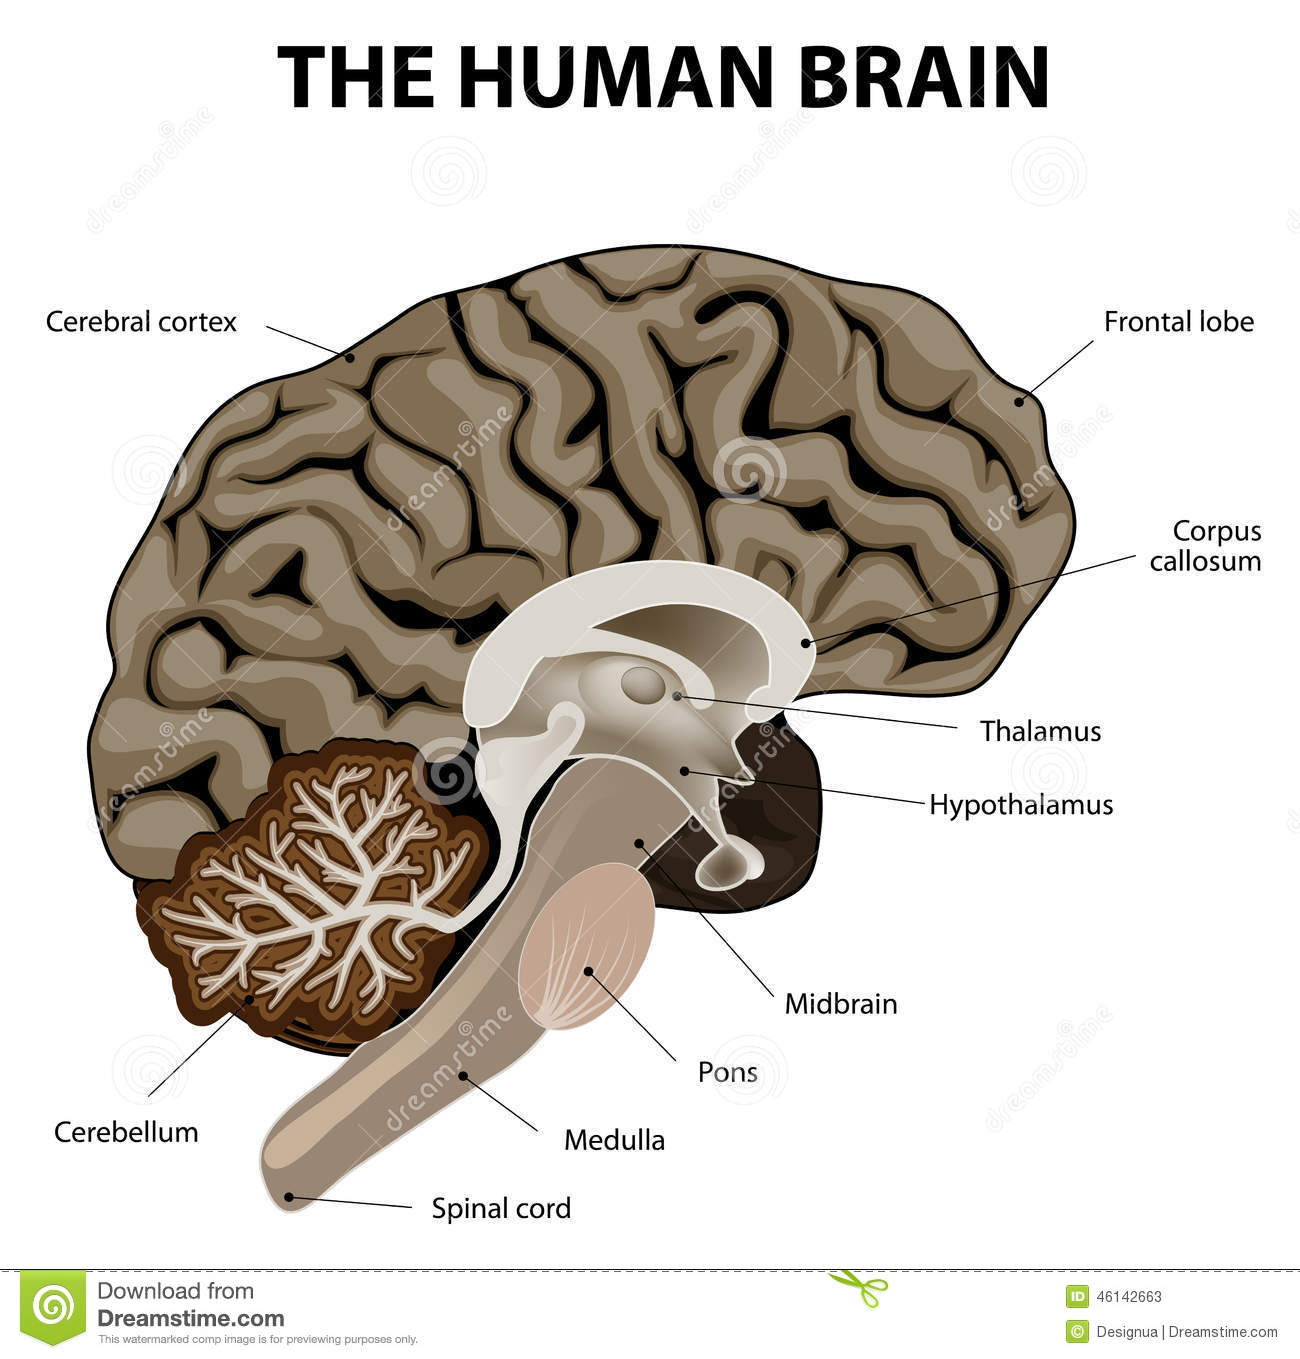 vertical section of a human brain stock vector illustration ofvertical section of a human brain showing the medulla, pons, cerebellum, hypothalamus, thalamus, midbrain